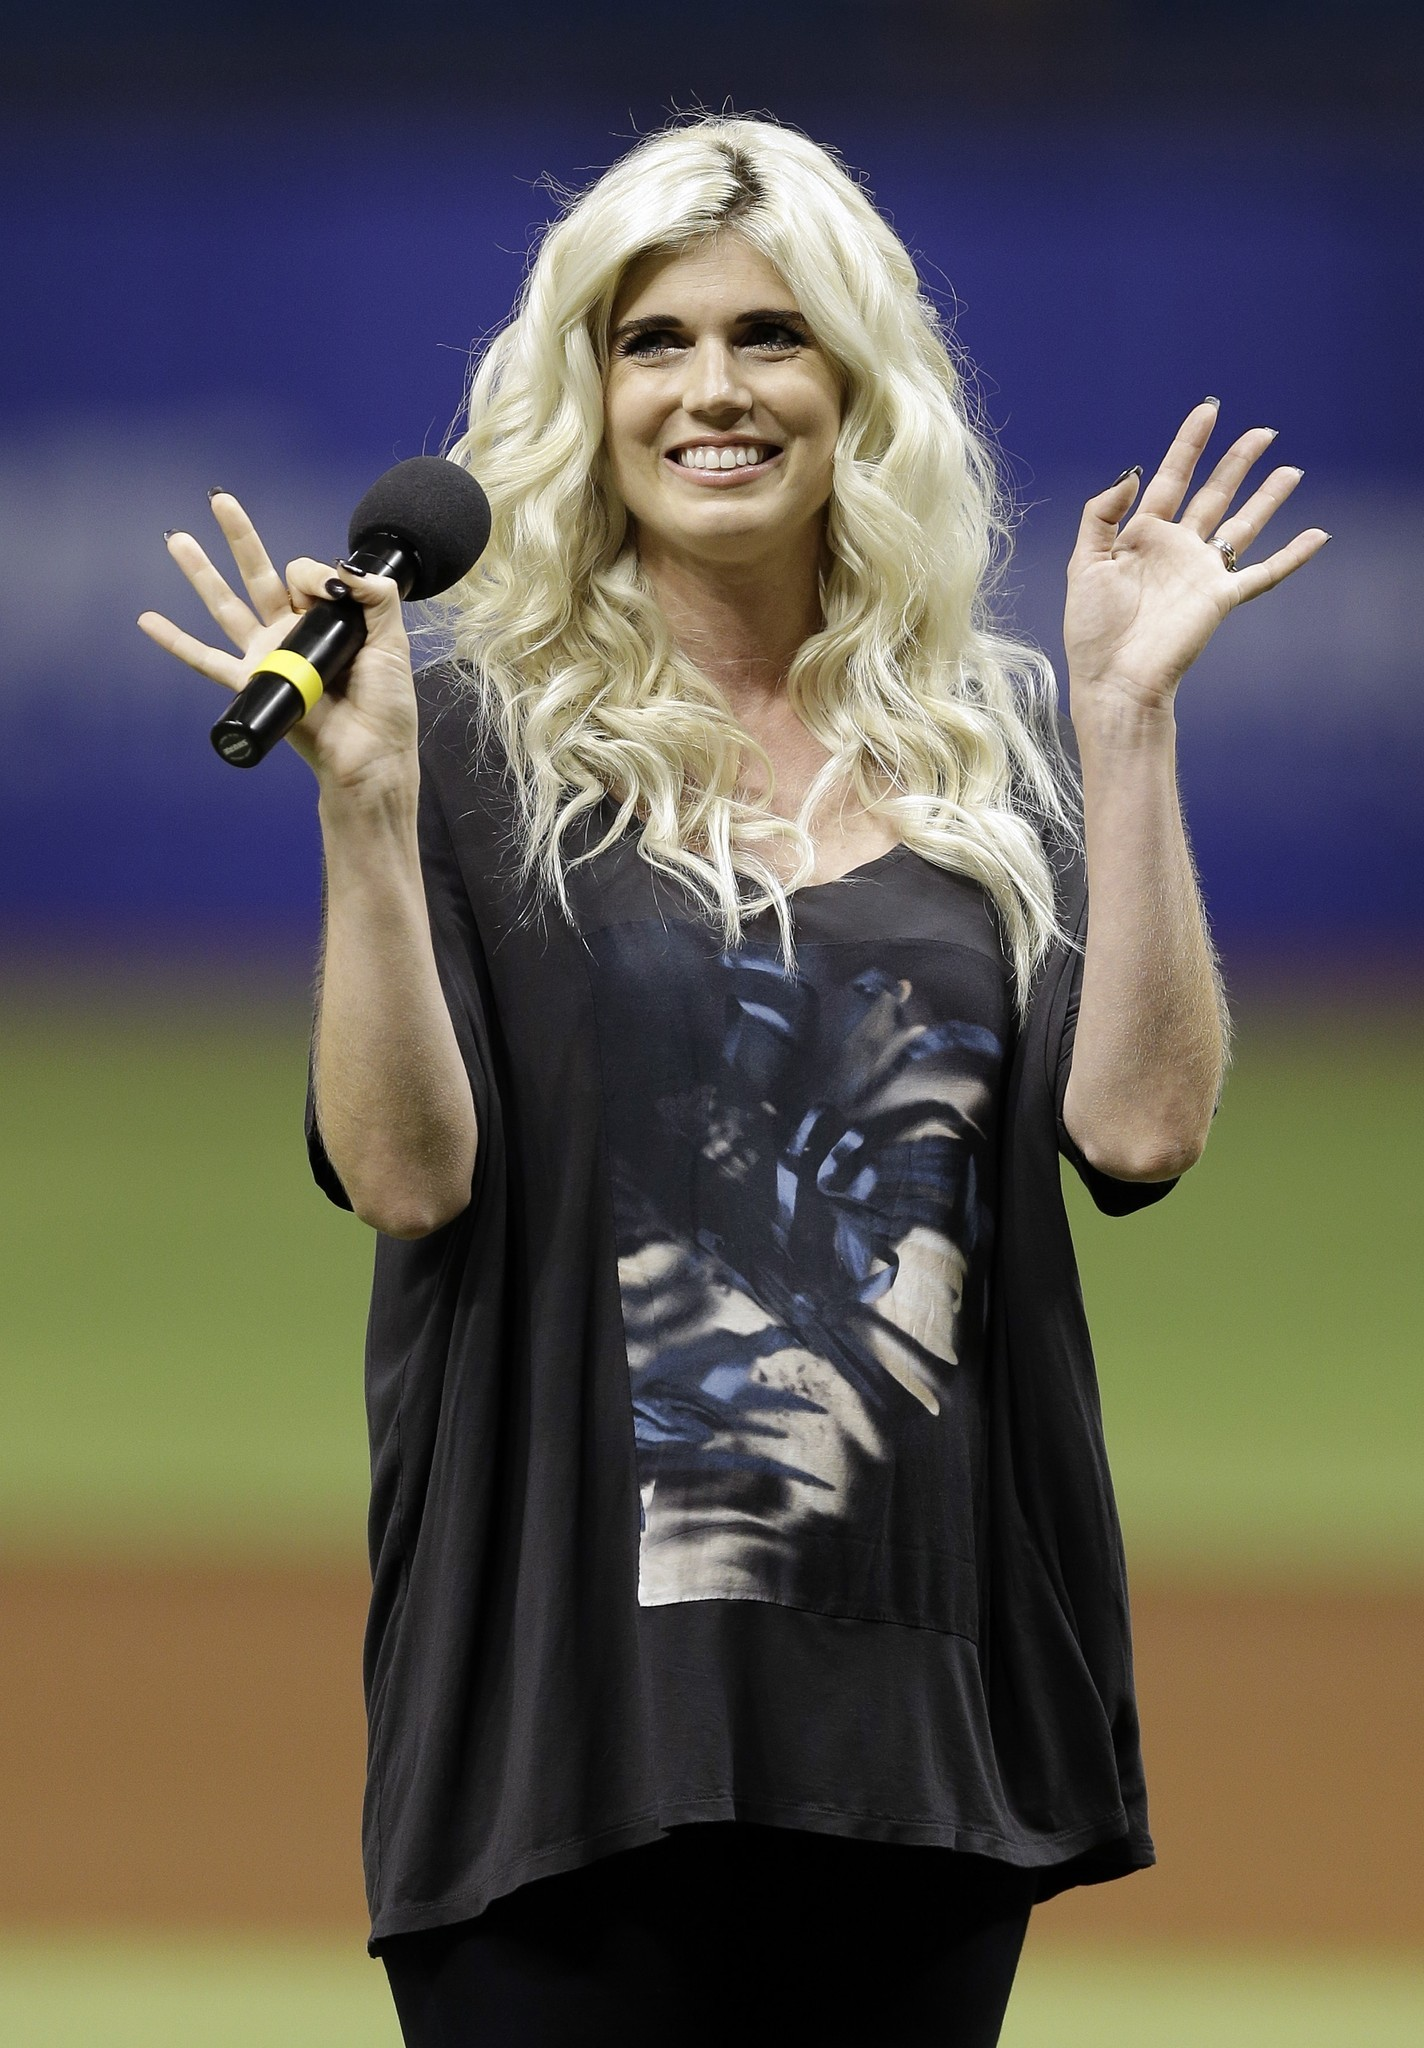 singer julianna zobrist bens wife on the cubs walkup